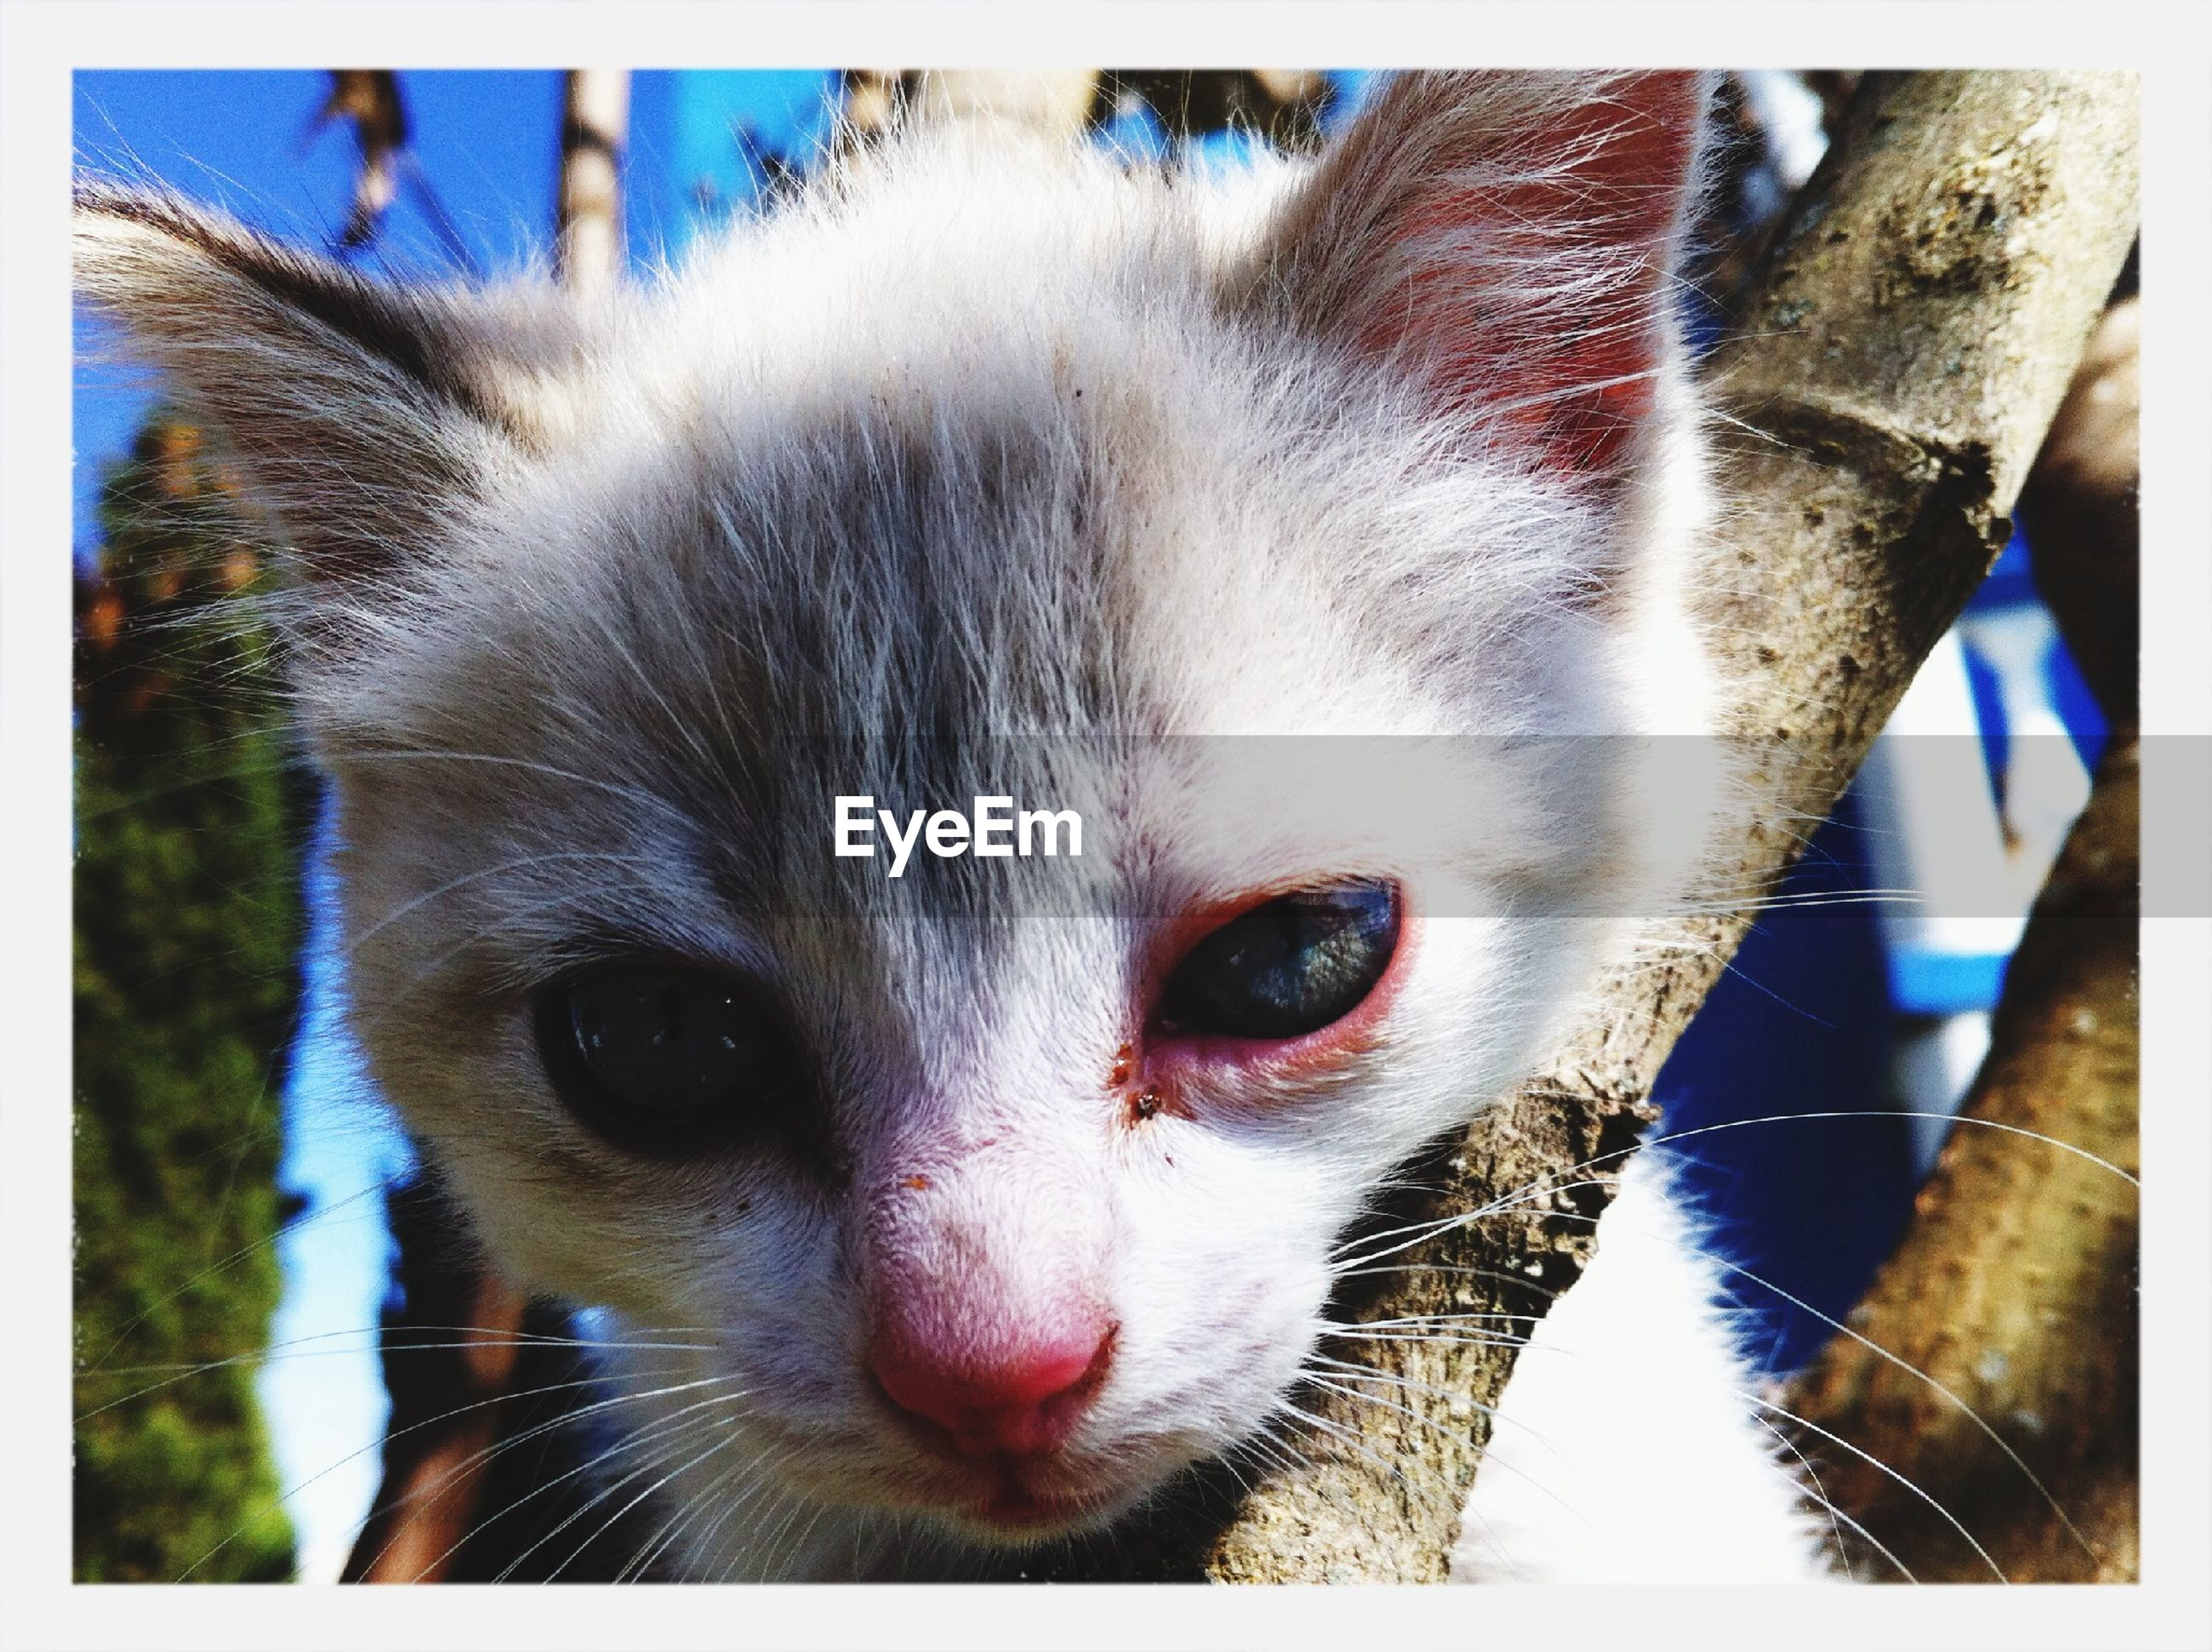 animal themes, one animal, pets, domestic animals, mammal, portrait, transfer print, looking at camera, close-up, auto post production filter, animal head, focus on foreground, day, domestic cat, dog, outdoors, front view, no people, whisker, part of